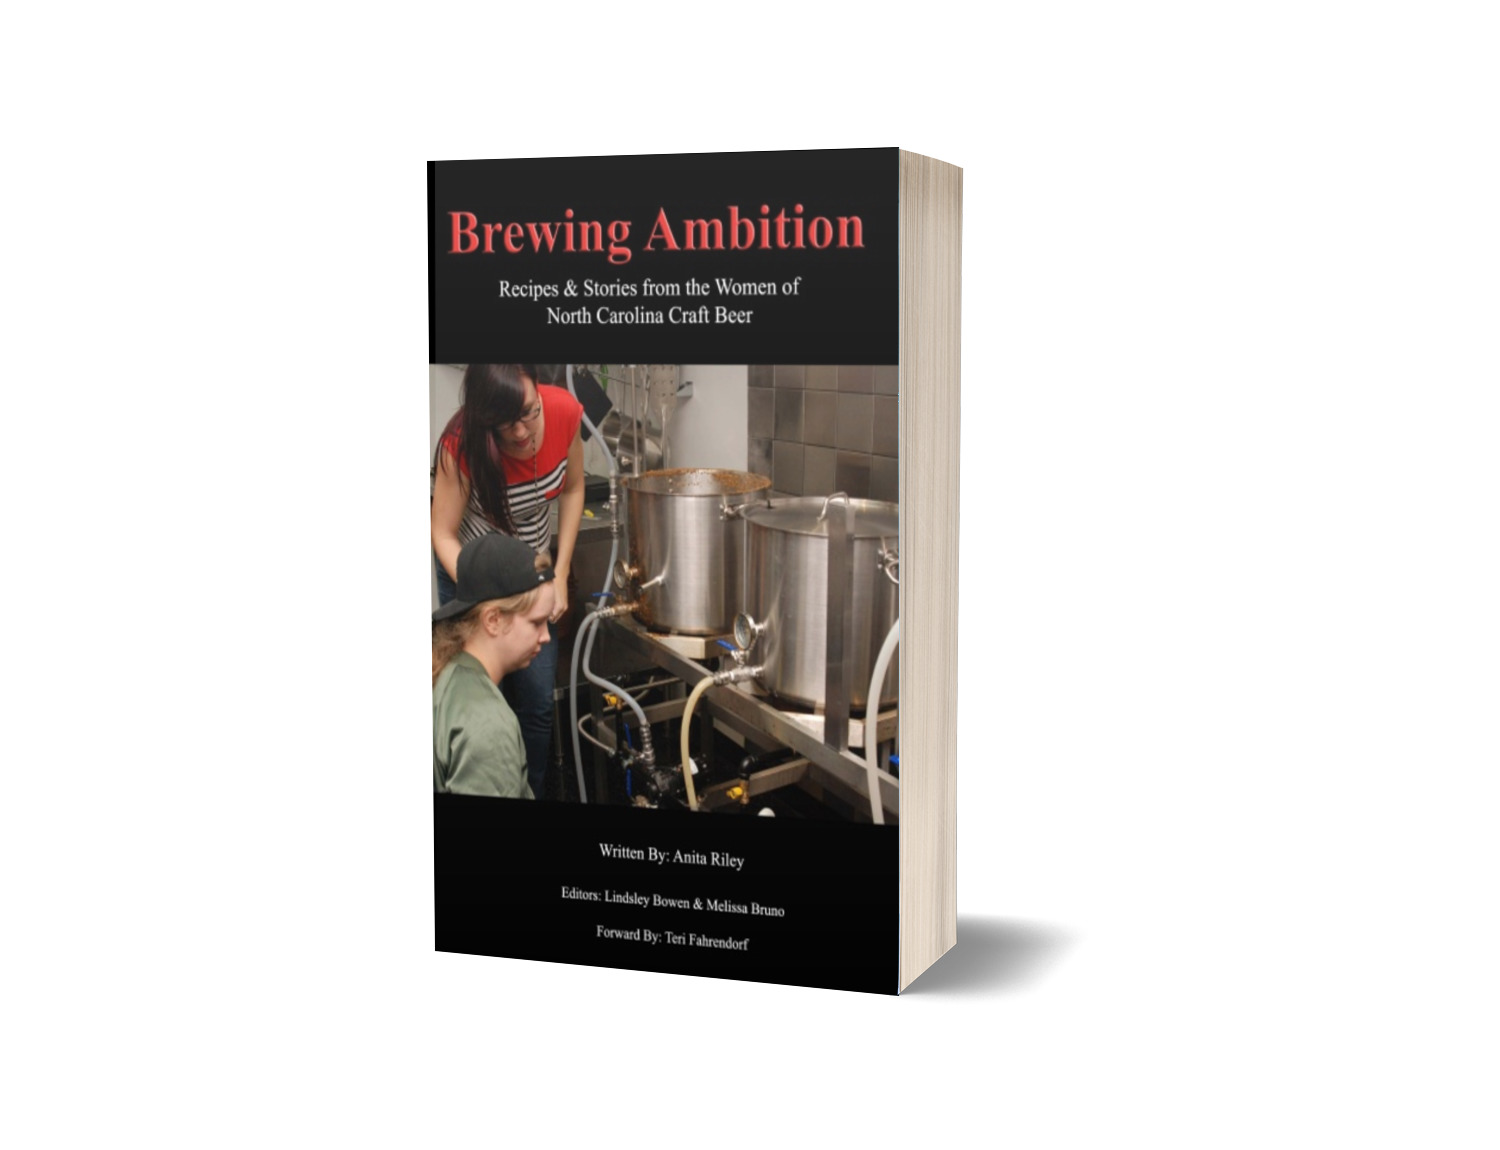 Brewing Ambition